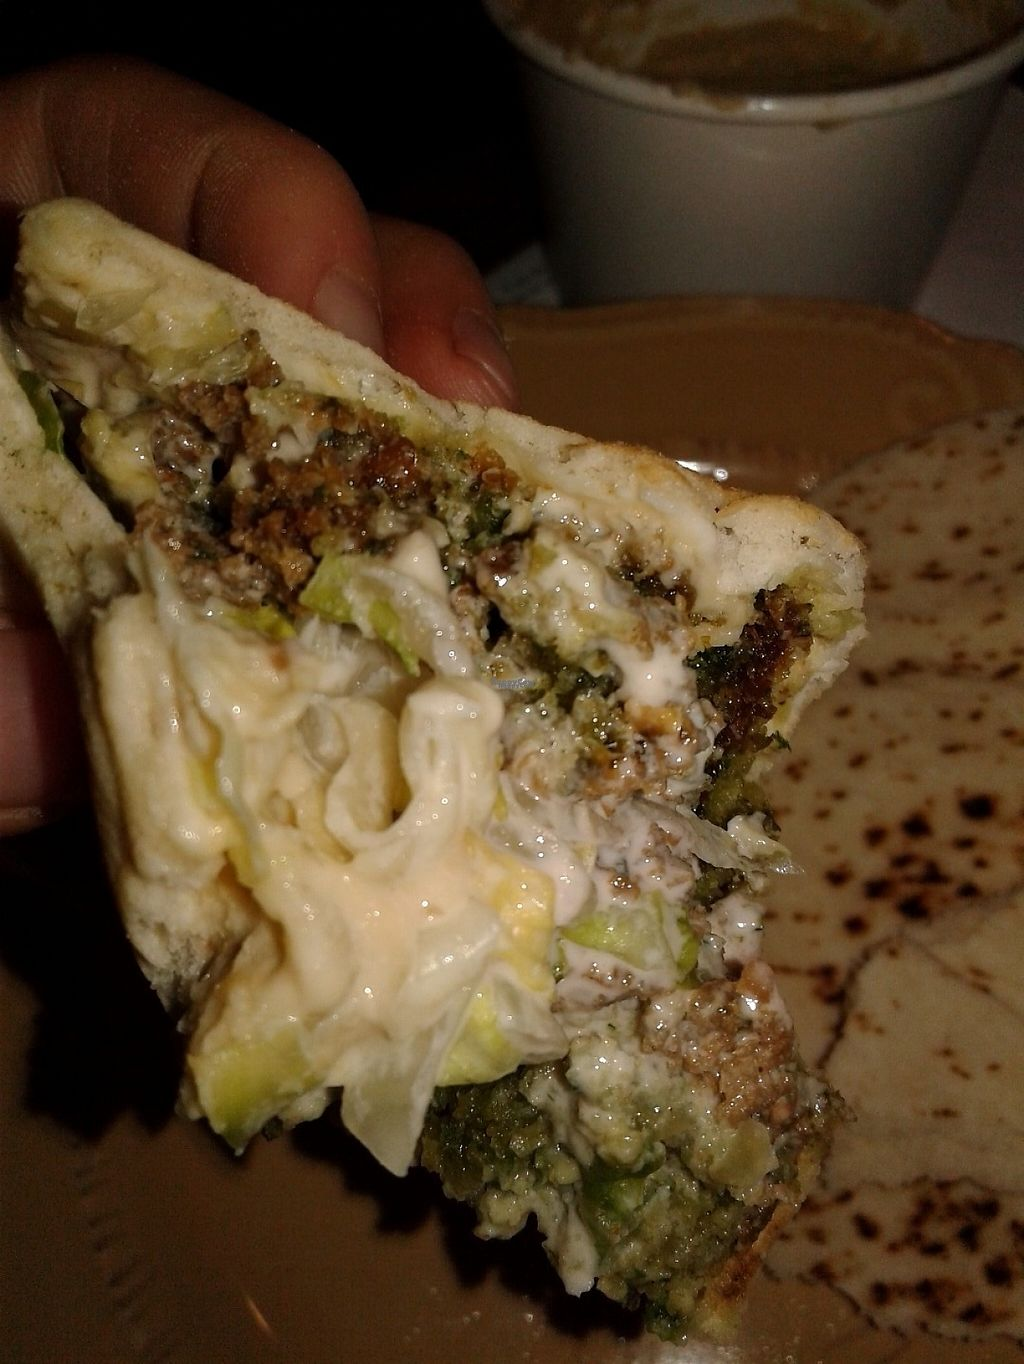 """Photo of Saca's Mediterranean Cuisine  by <a href=""""/members/profile/anastronomy"""">anastronomy</a> <br/>An up-close of the falefal sandwich with pickled turnips, onion, lettuce, think sauce, falafels, hummus, and pita <br/> March 27, 2017  - <a href='/contact/abuse/image/84311/241672'>Report</a>"""